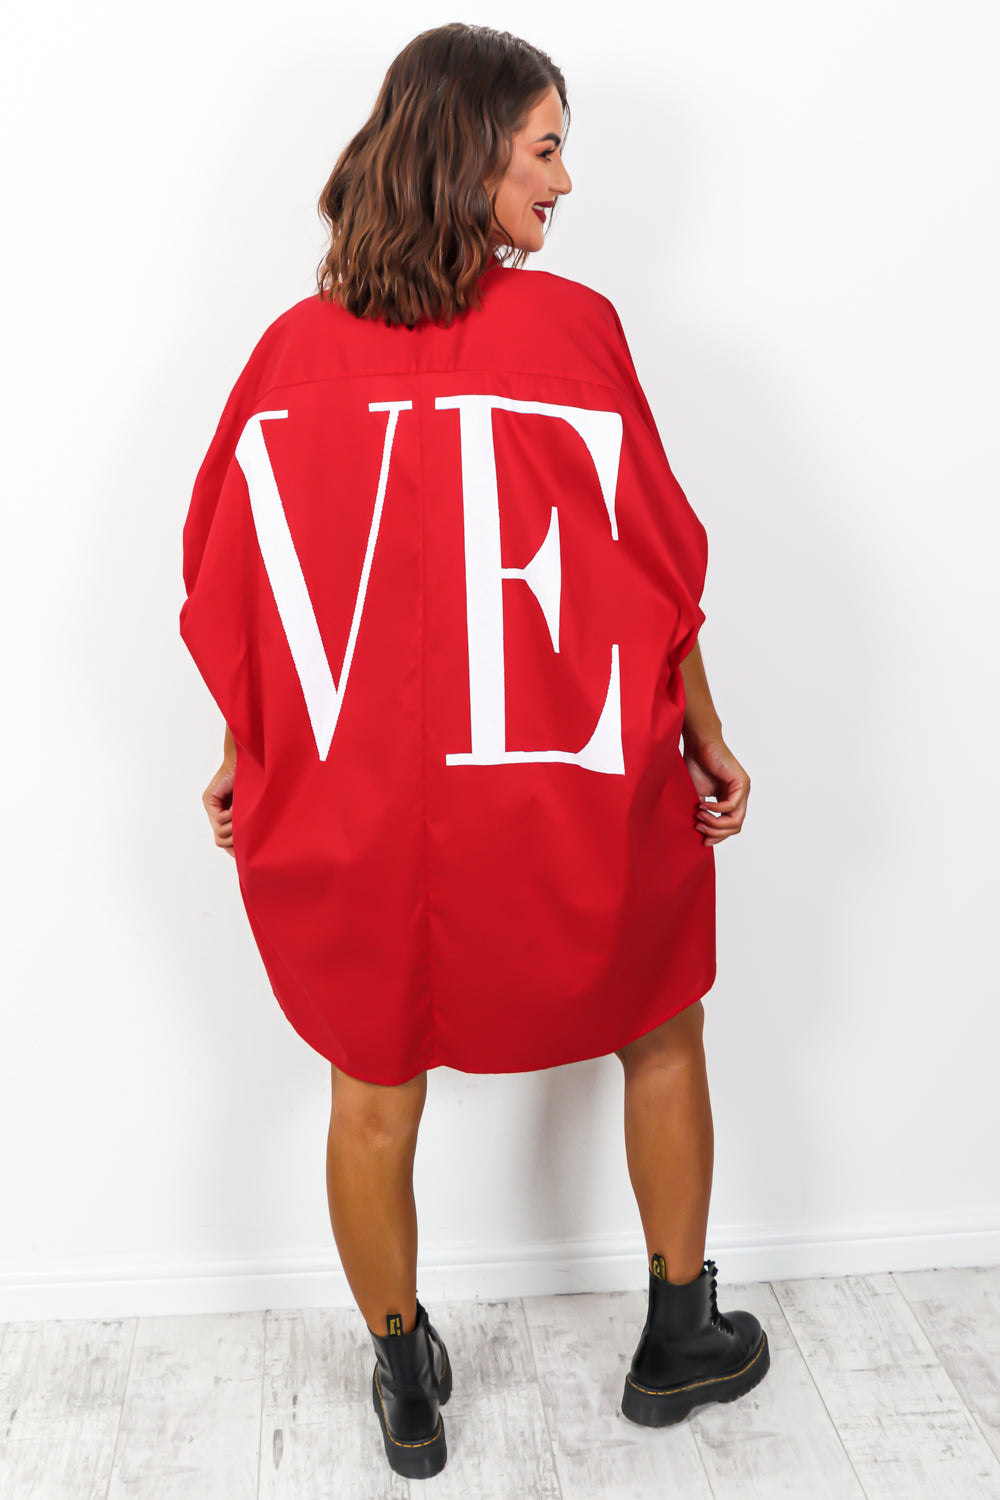 Spread The Love - Shirt Dress In RED